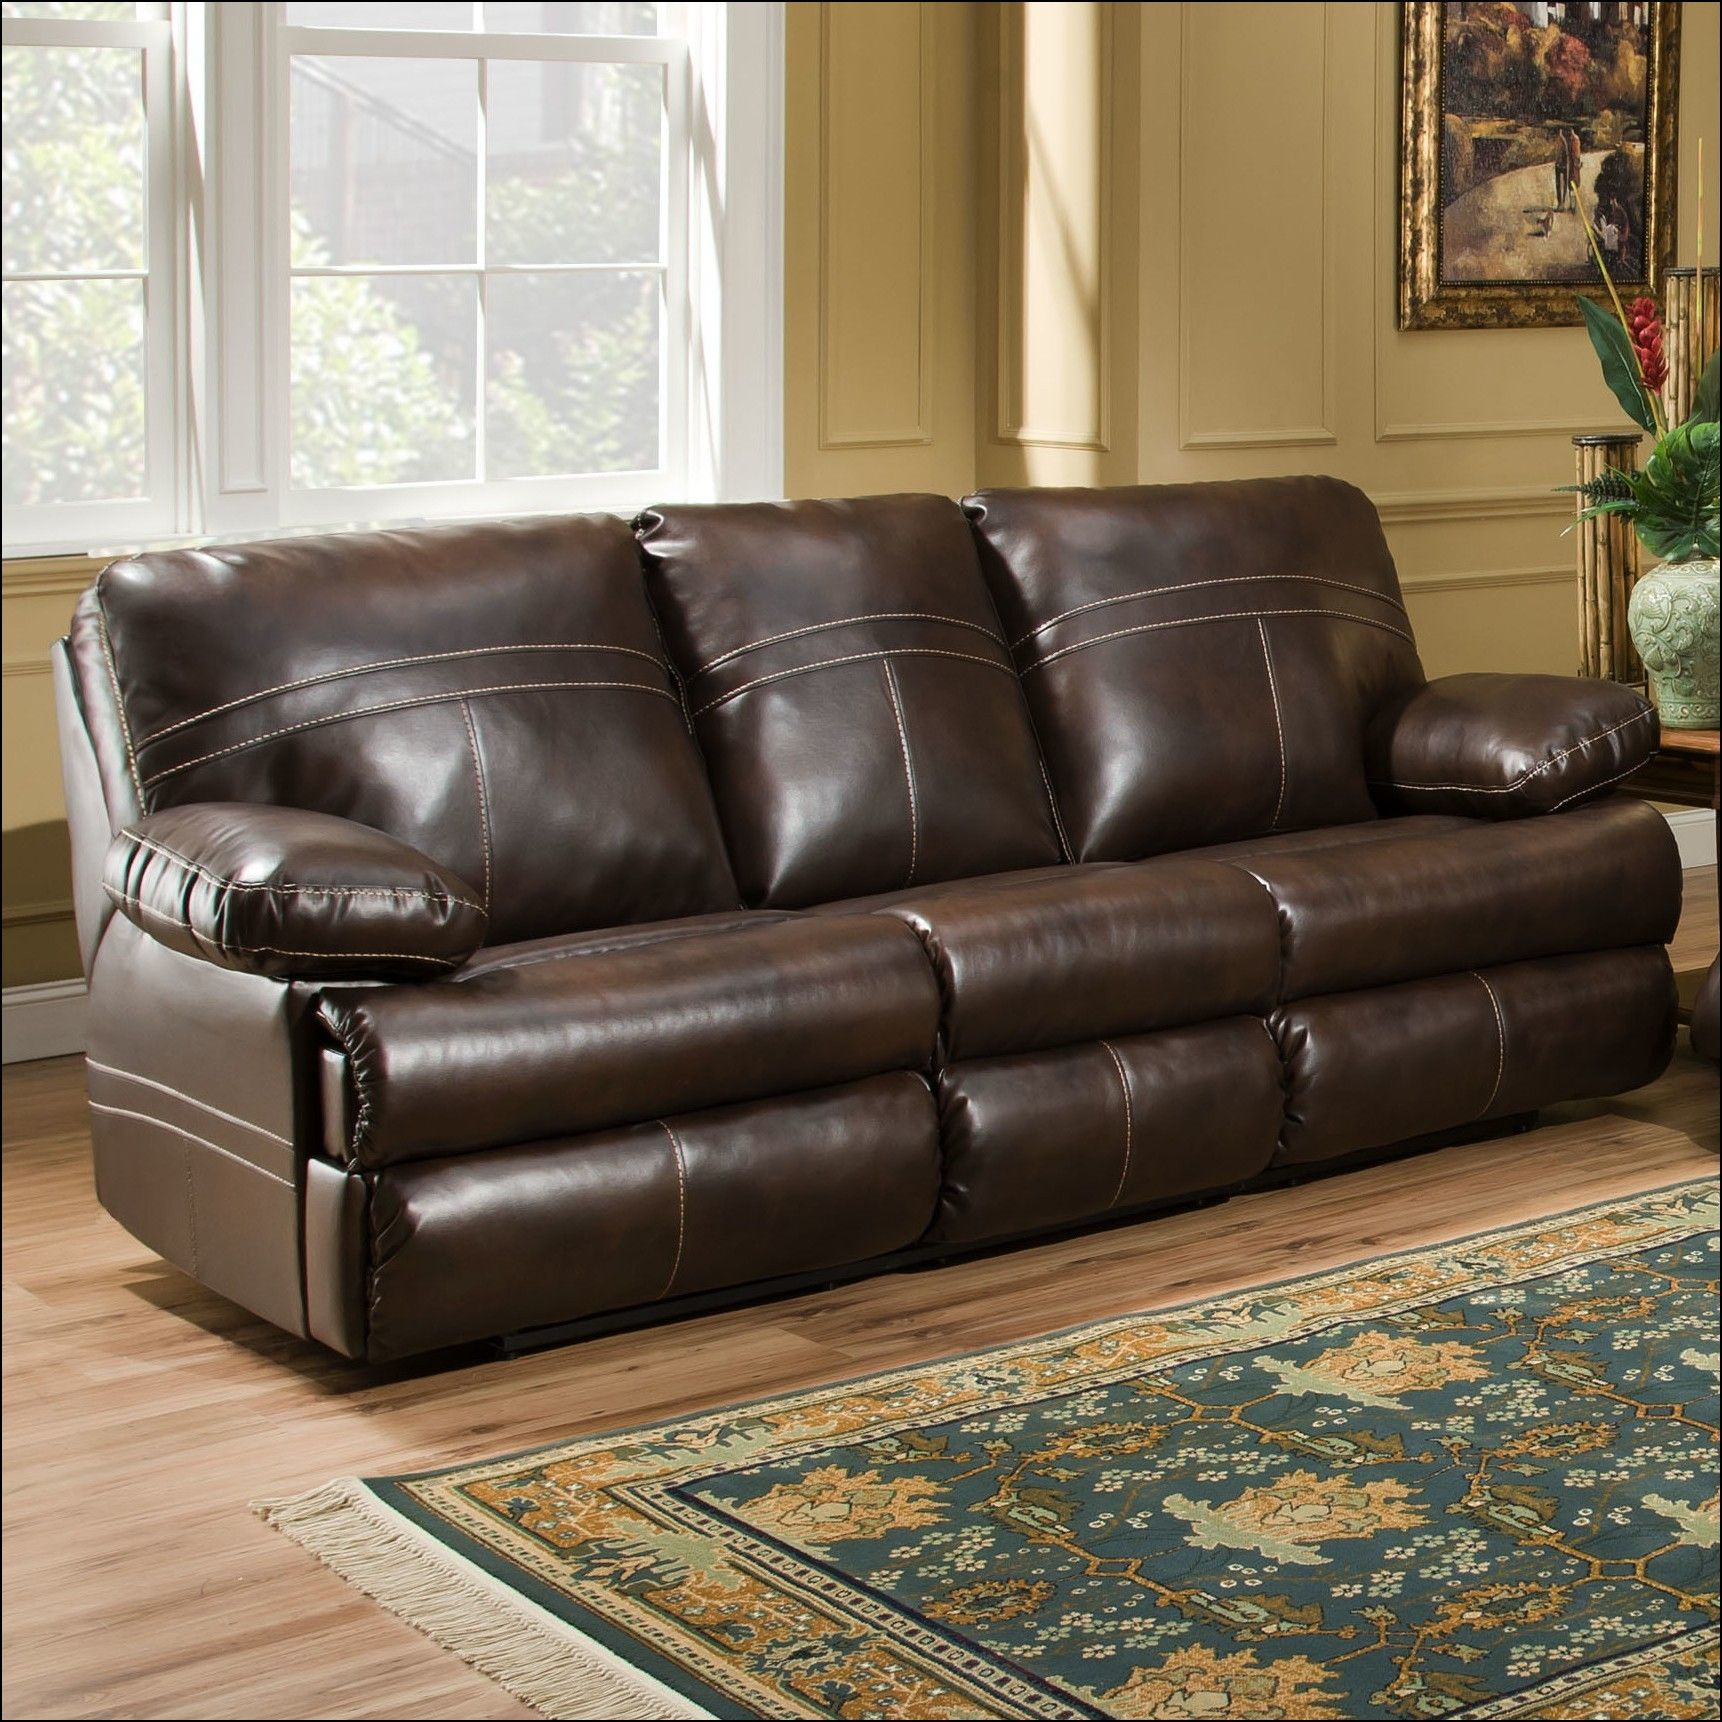 Simmons Beautyrest Sofa Bed